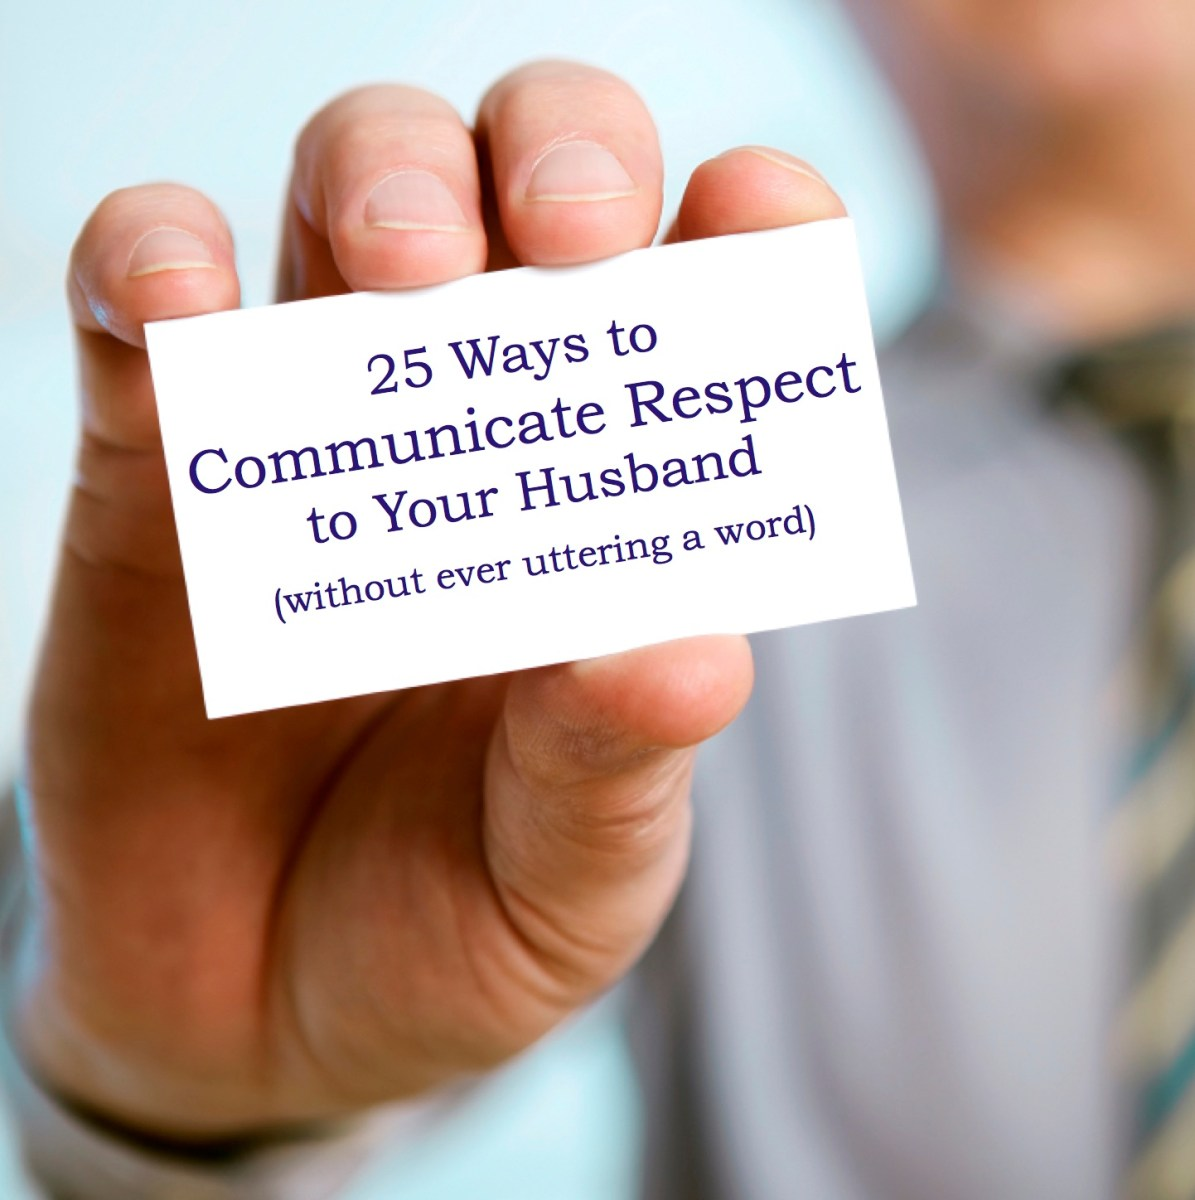 25 Ways to Communicate Respect